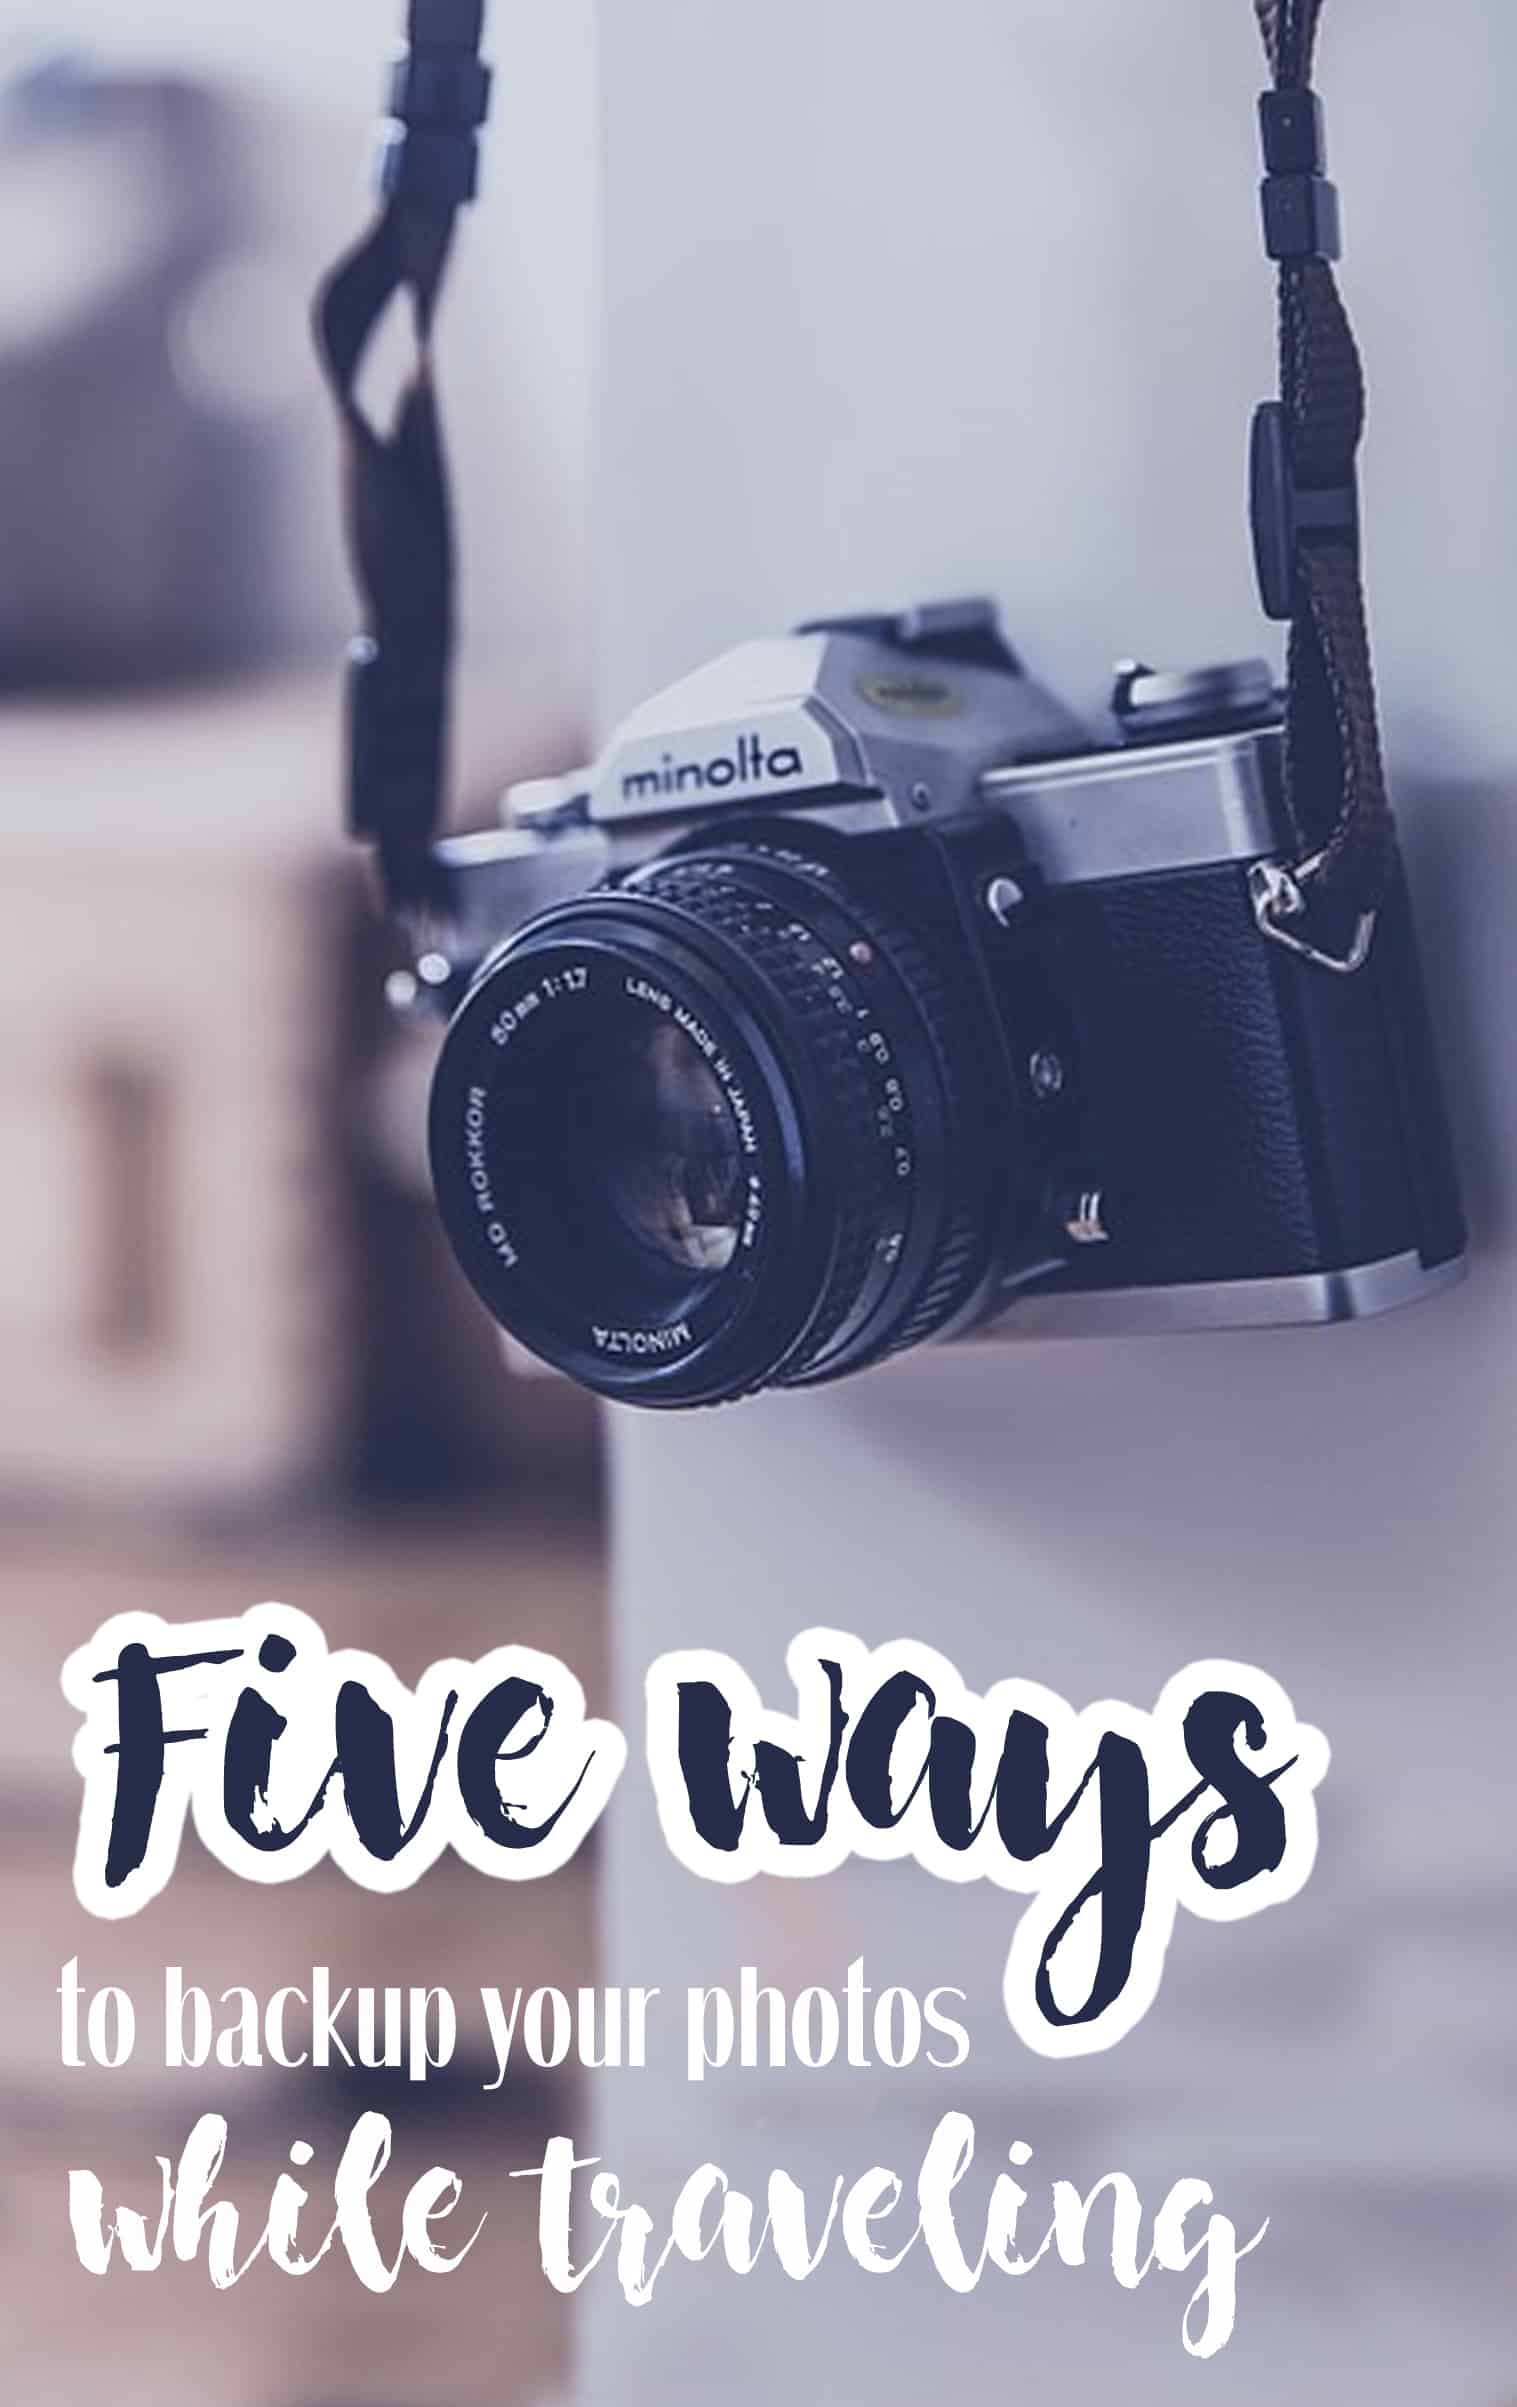 Five aways to back up your photos while traveling